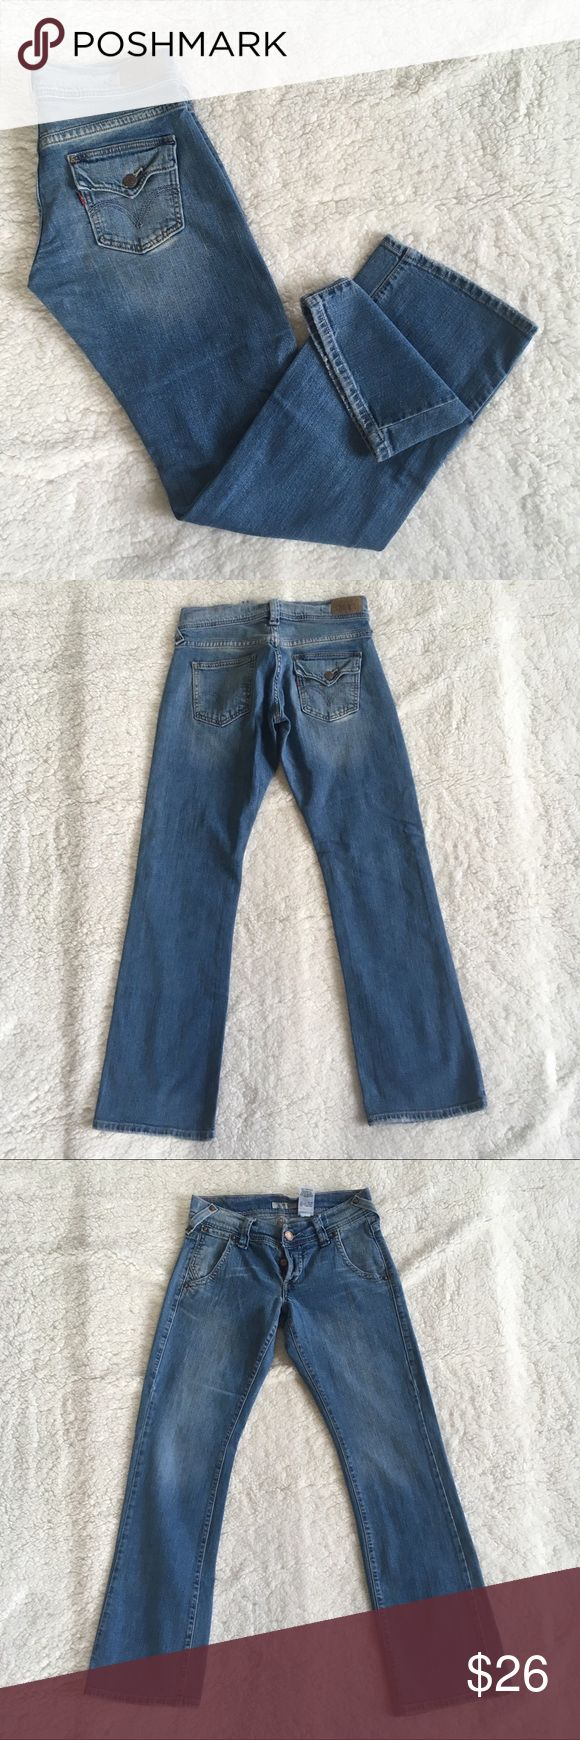 "Levi's 513 Boycut Denim button fly jeans 29 Levi's 513 Boycut Denim button fly jeans 29  3 button fly Levi's jeans. Some scuffing on the seams (normal wear) & scuffing on bottoms of legs.   Measurements Approximate Tag Size 1m Jr  Waist Flat 14.5"" (29"") Rise 7.5"" Hip 17"" Inseam 31.25"" Levi's Jeans"